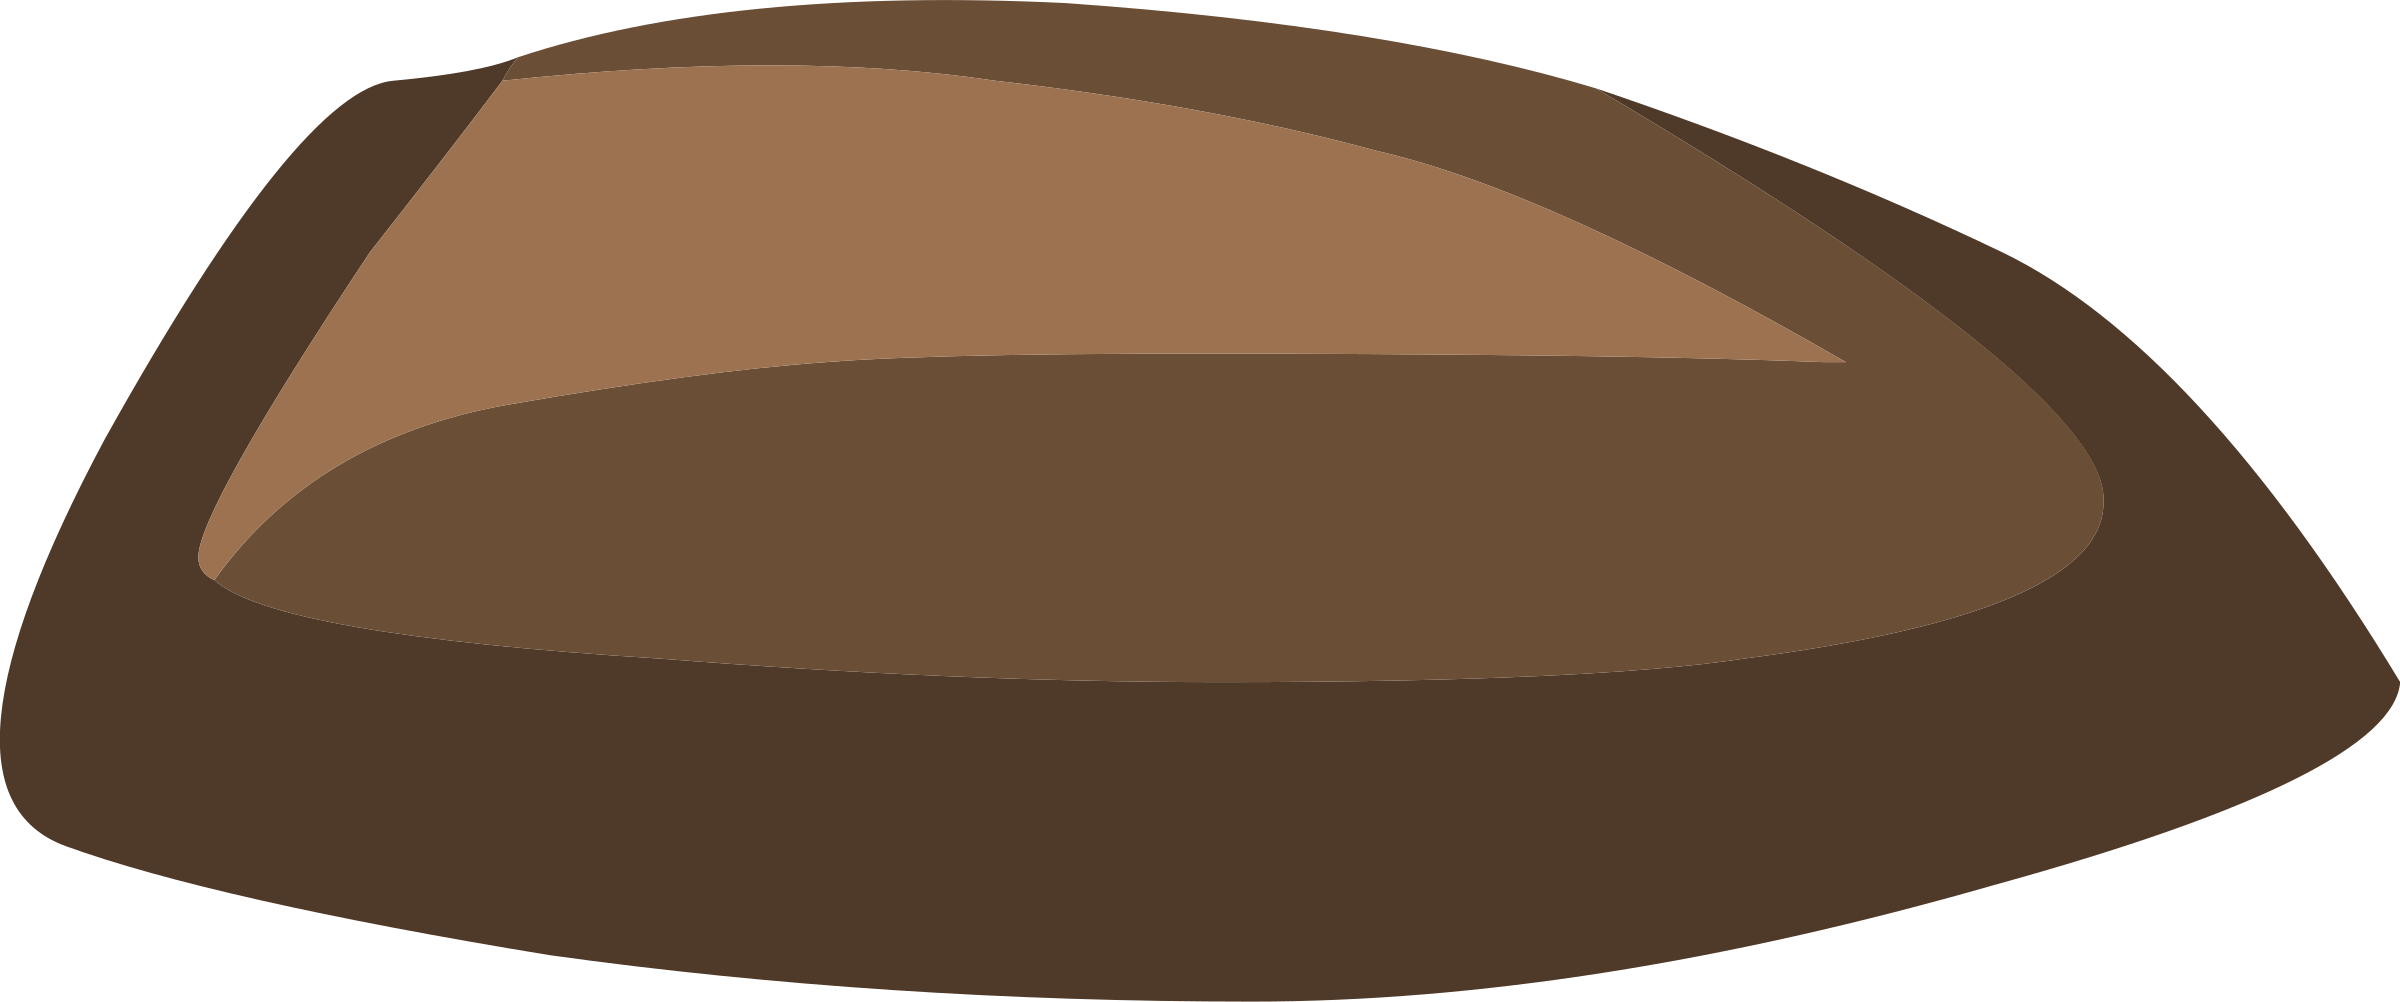 Clipart rock small rock. Misc seed brown icons